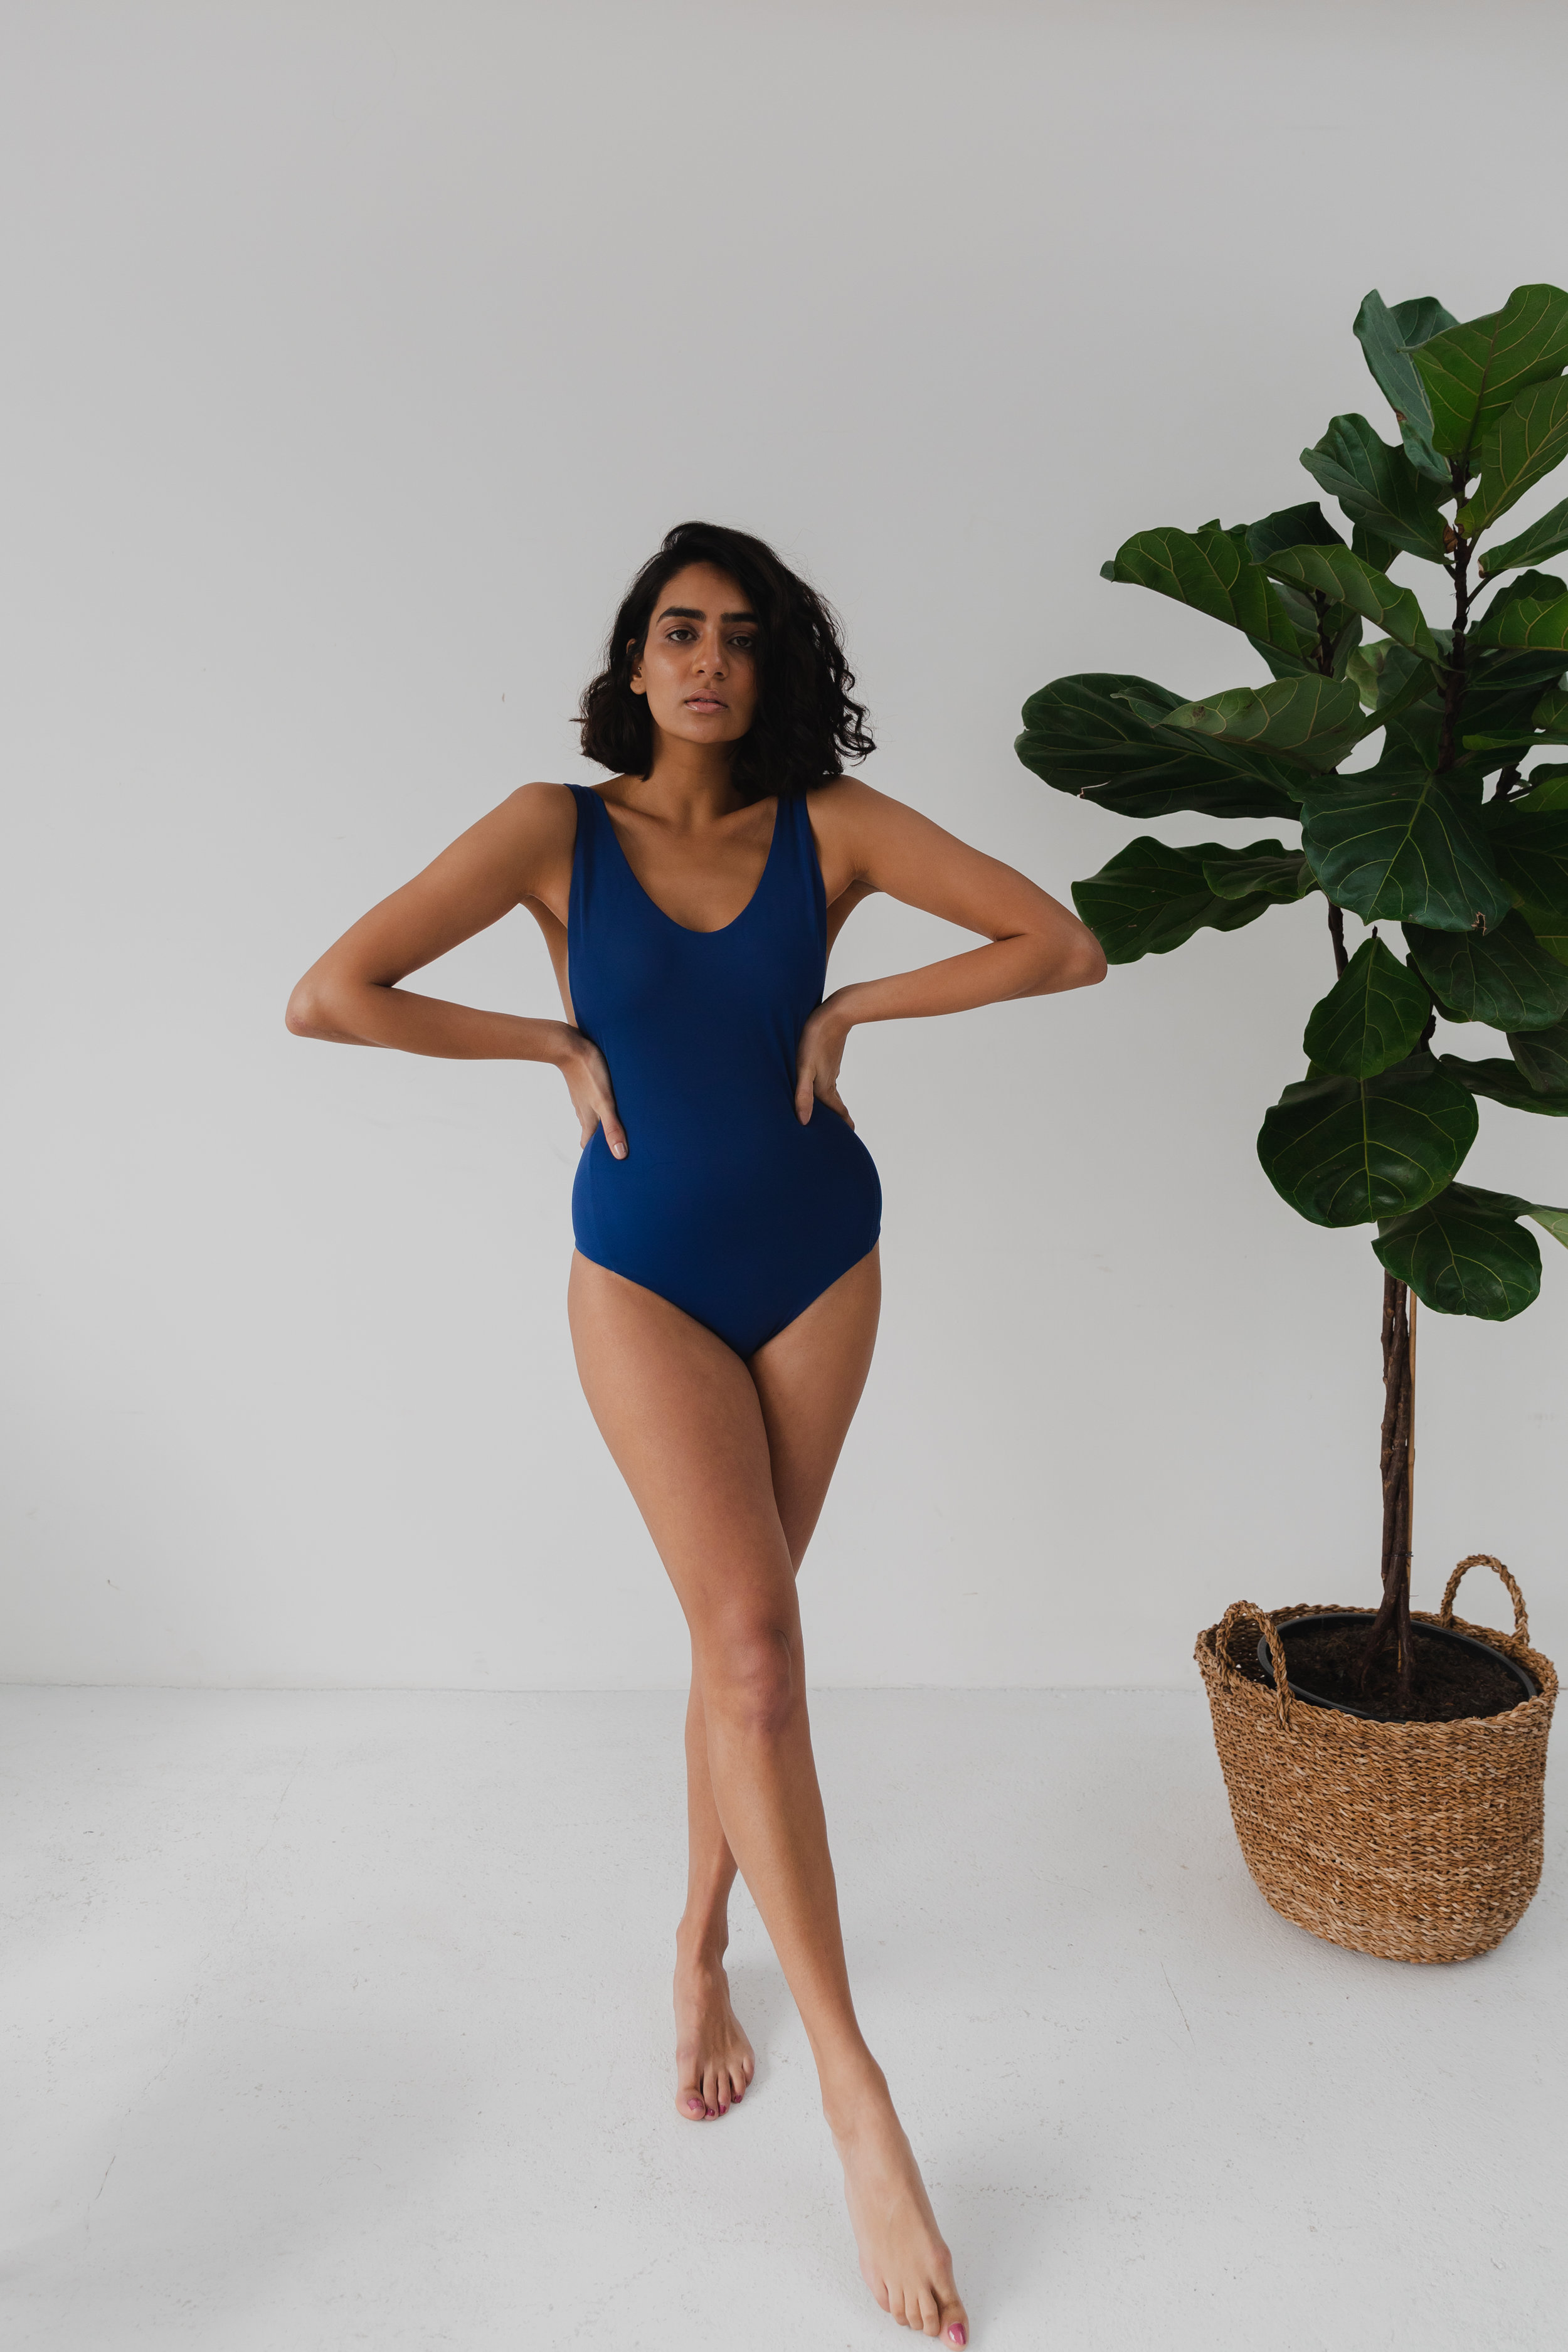 Made from recycled ocean plastic - Speaking of recycling…the Wanderlust One Piece is made from ECONLY fabric, 100% recycled ocean plastic.